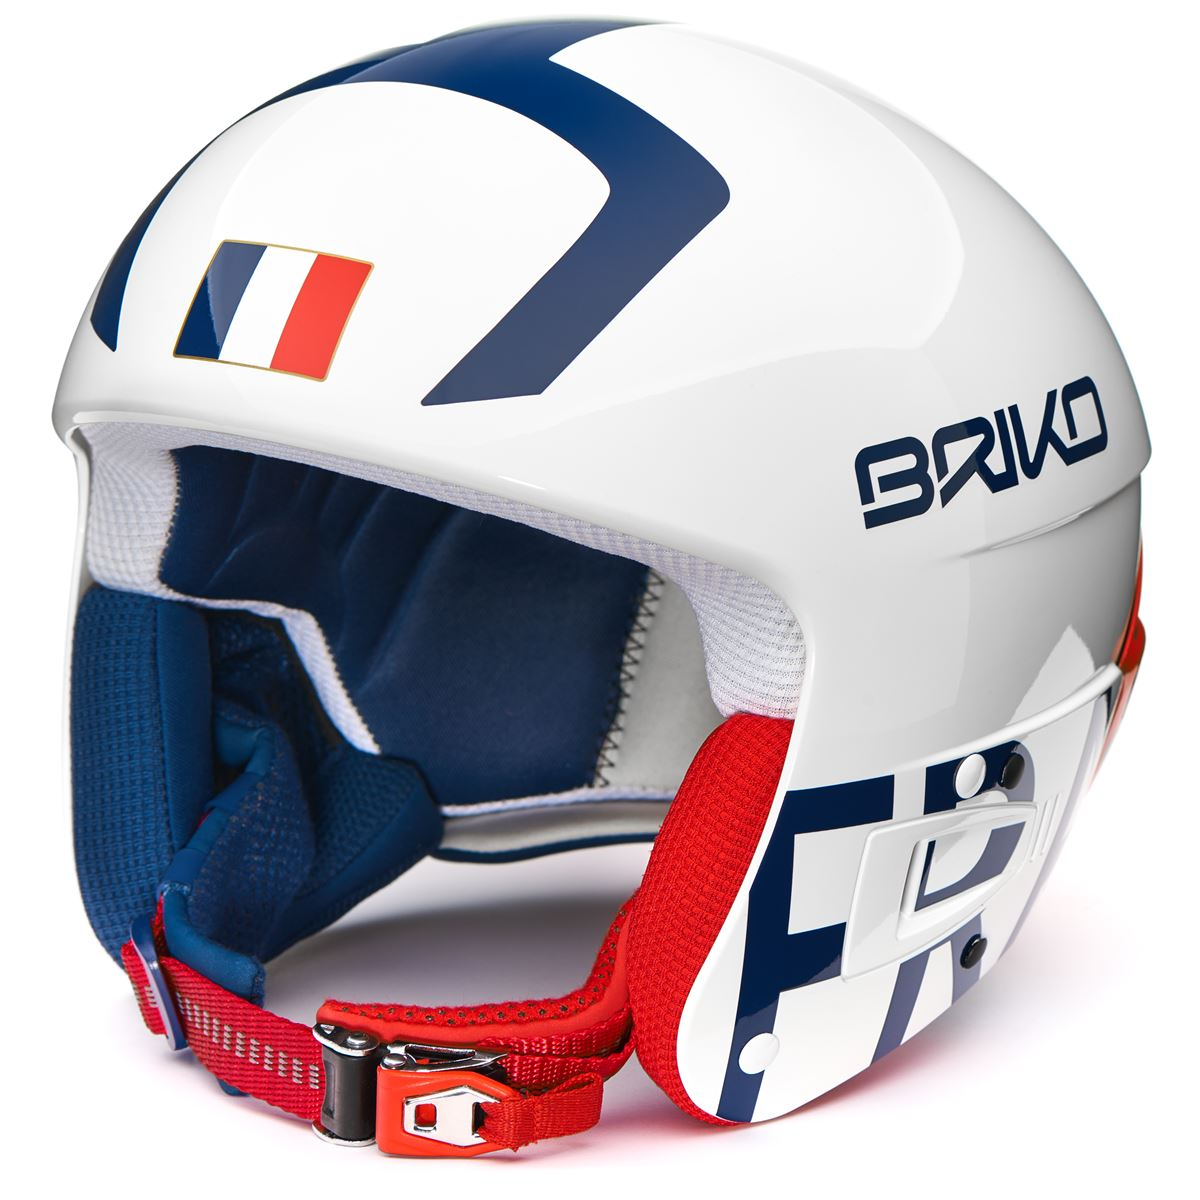 Helmets Briko for men-2001UW0